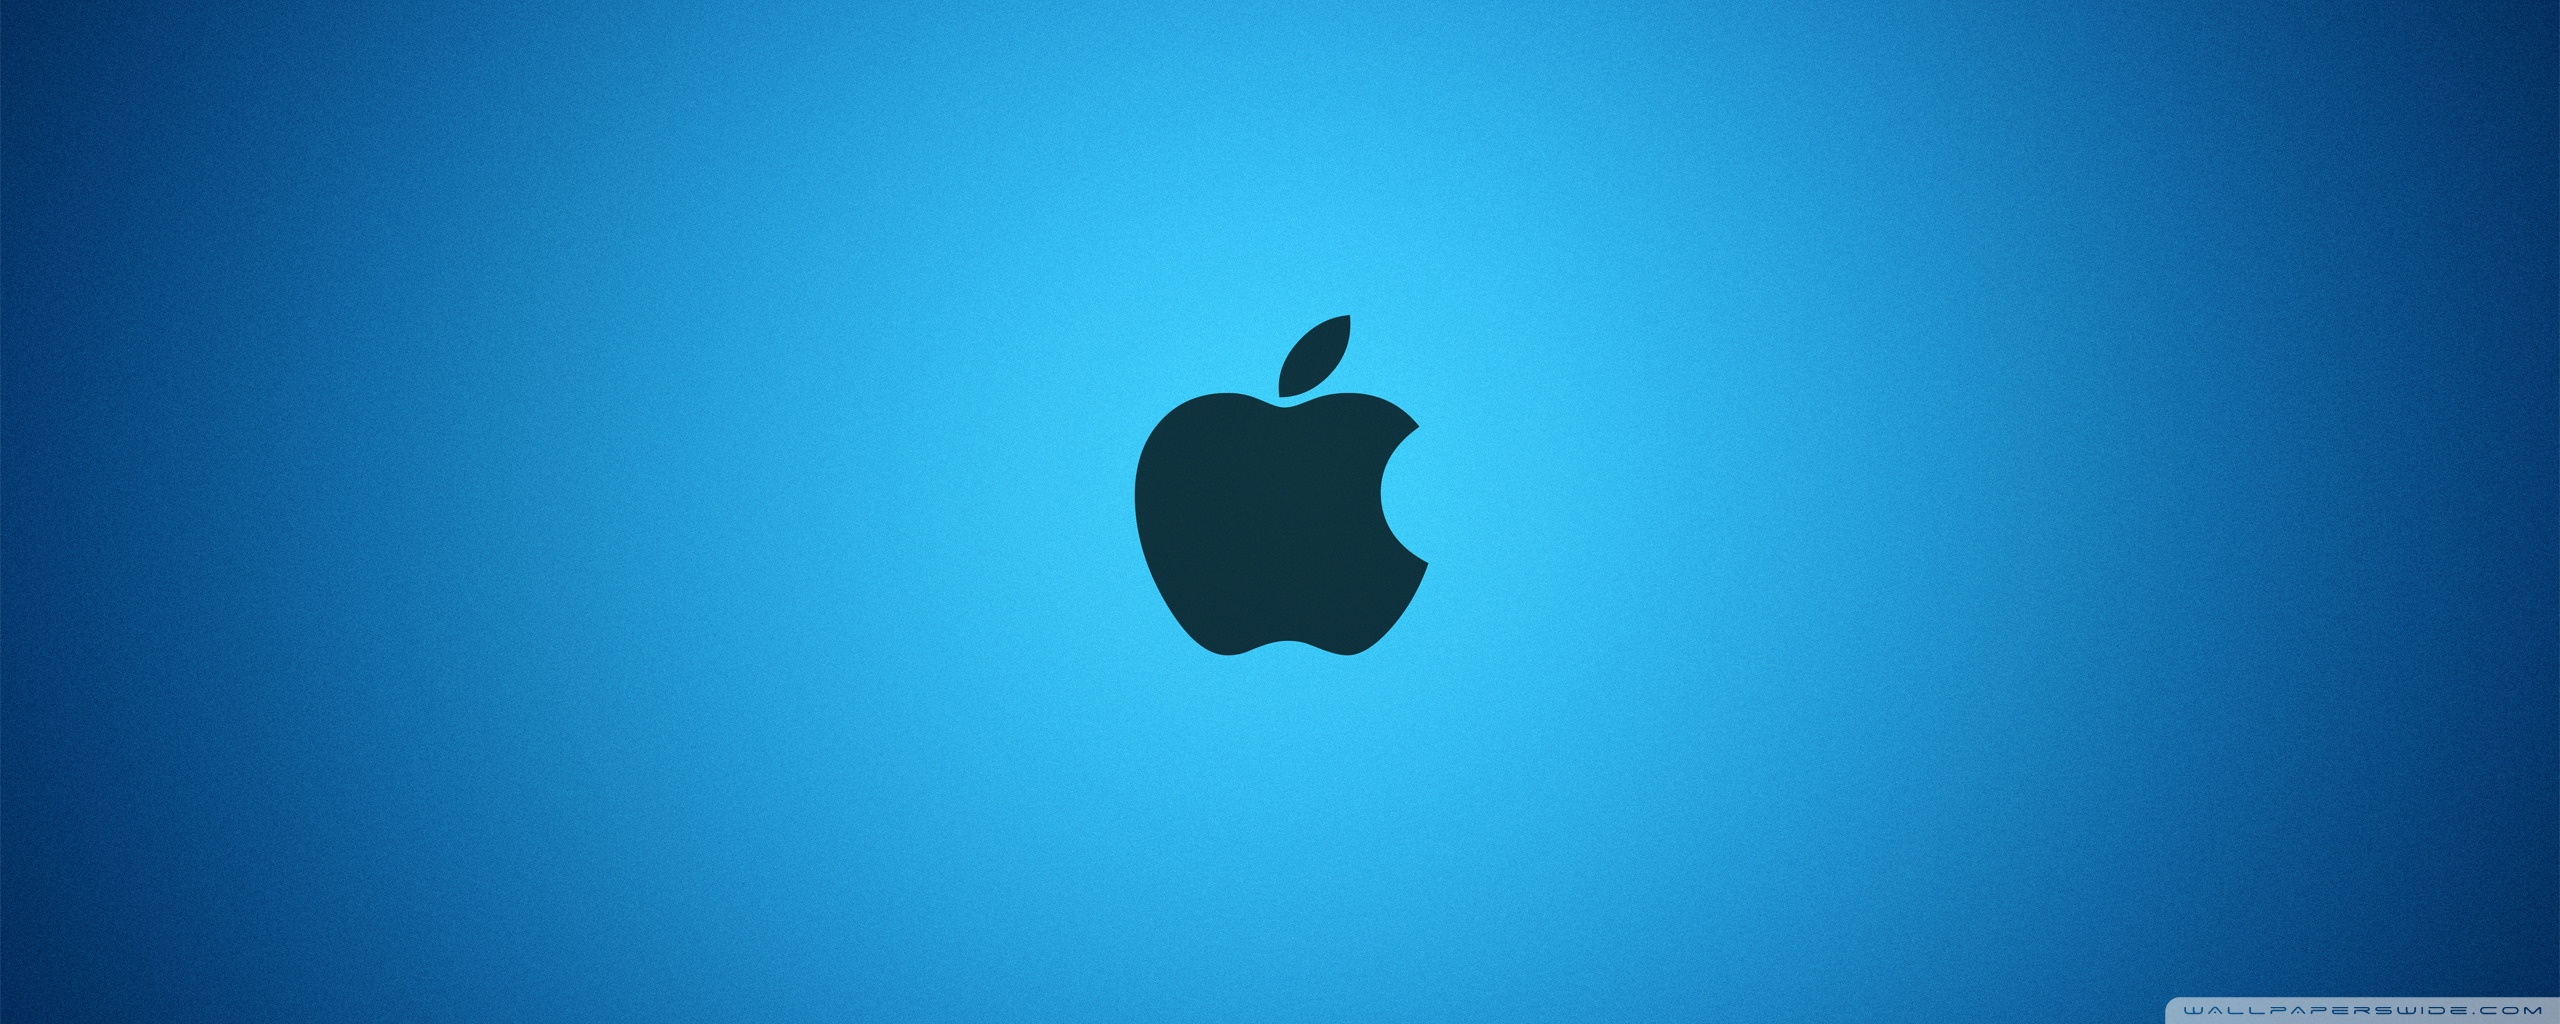 Blue Apple Logo Wallpaper